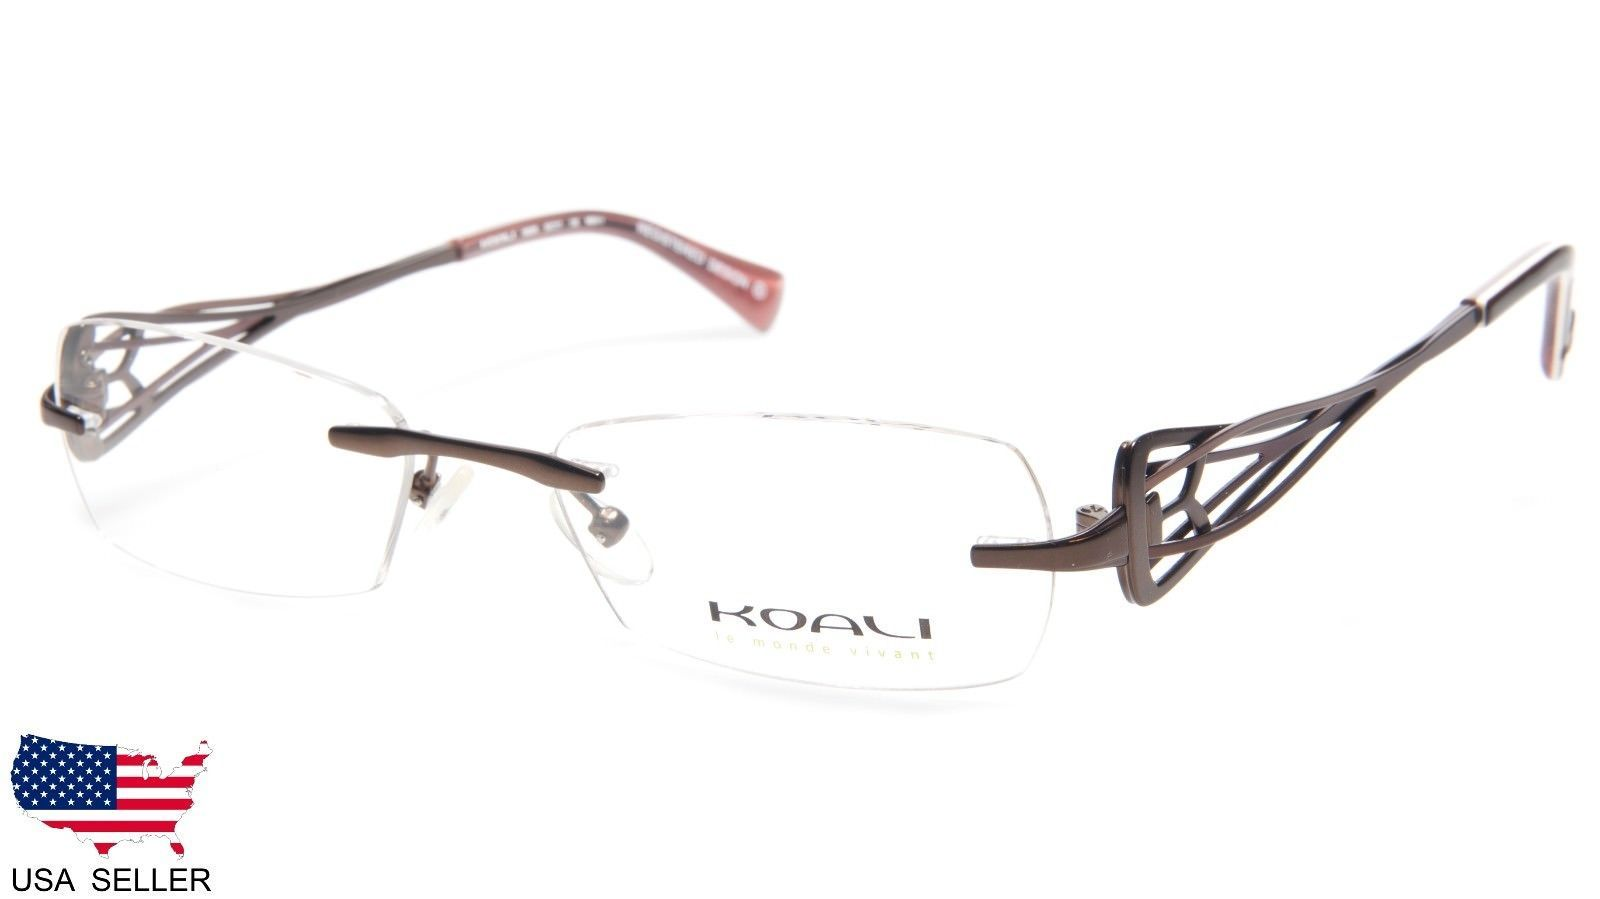 9b6af42a01 New Koali 6830K MM011 Brown Eyeglasses and 50 similar items. S l1600